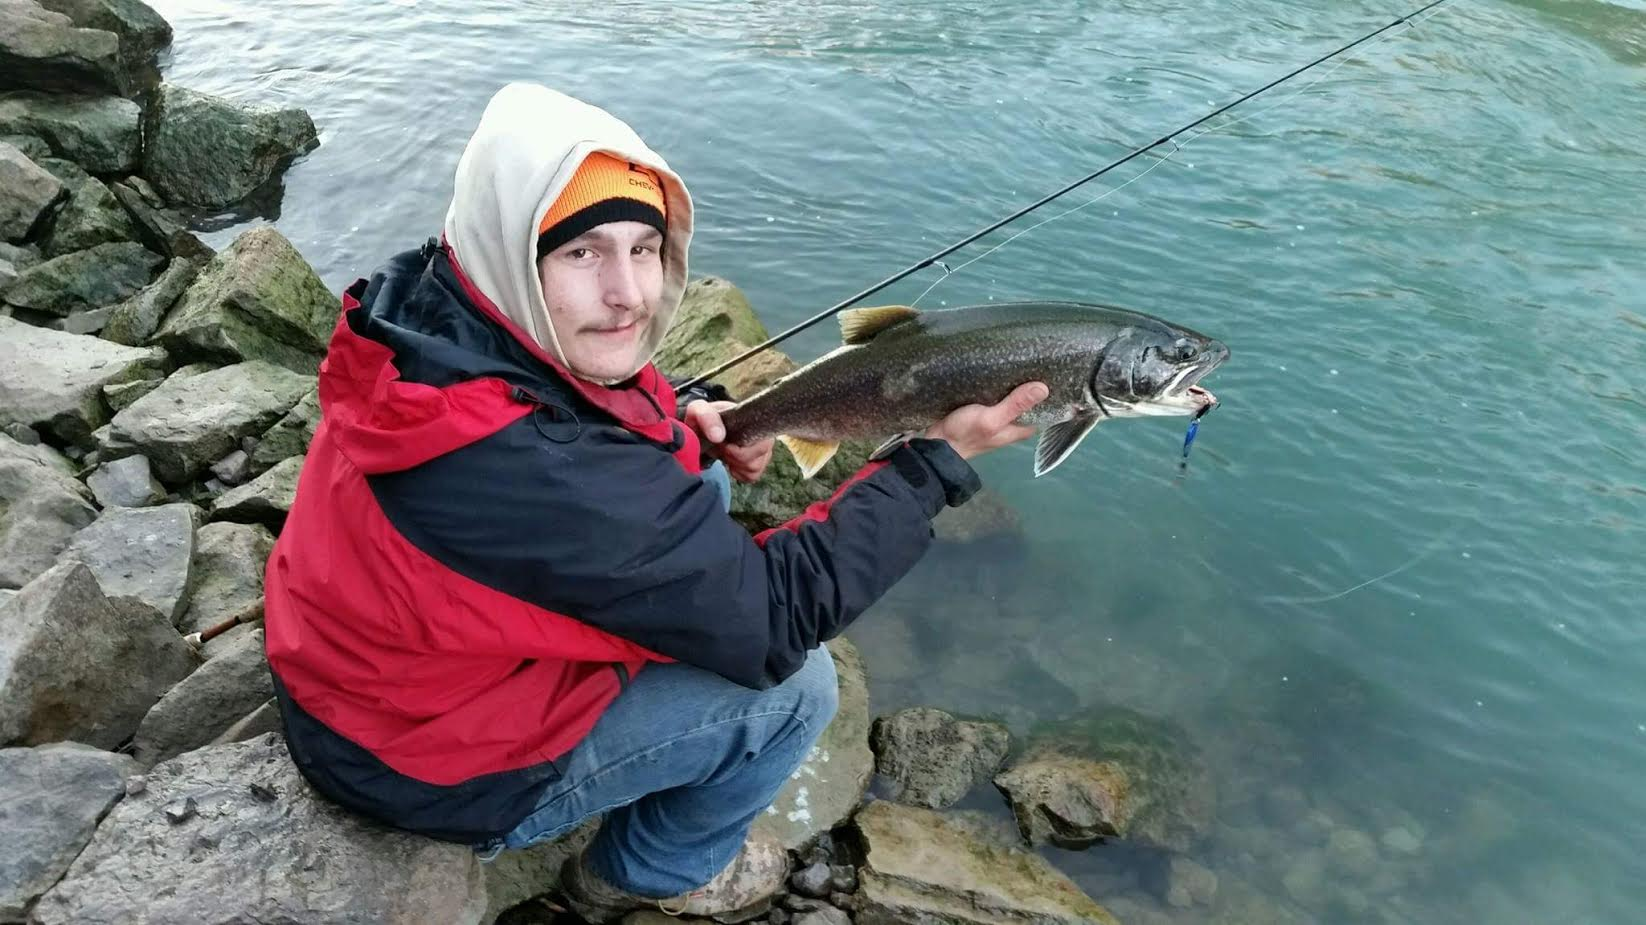 Glenn Strzelczyk of the Town of Niagara gets ready to release a lake trout in the lower Niagara River after catching it on a spinner. Lake trout season opens on Jan. 1 in the lower river. It is open all year in the upper Niagara.